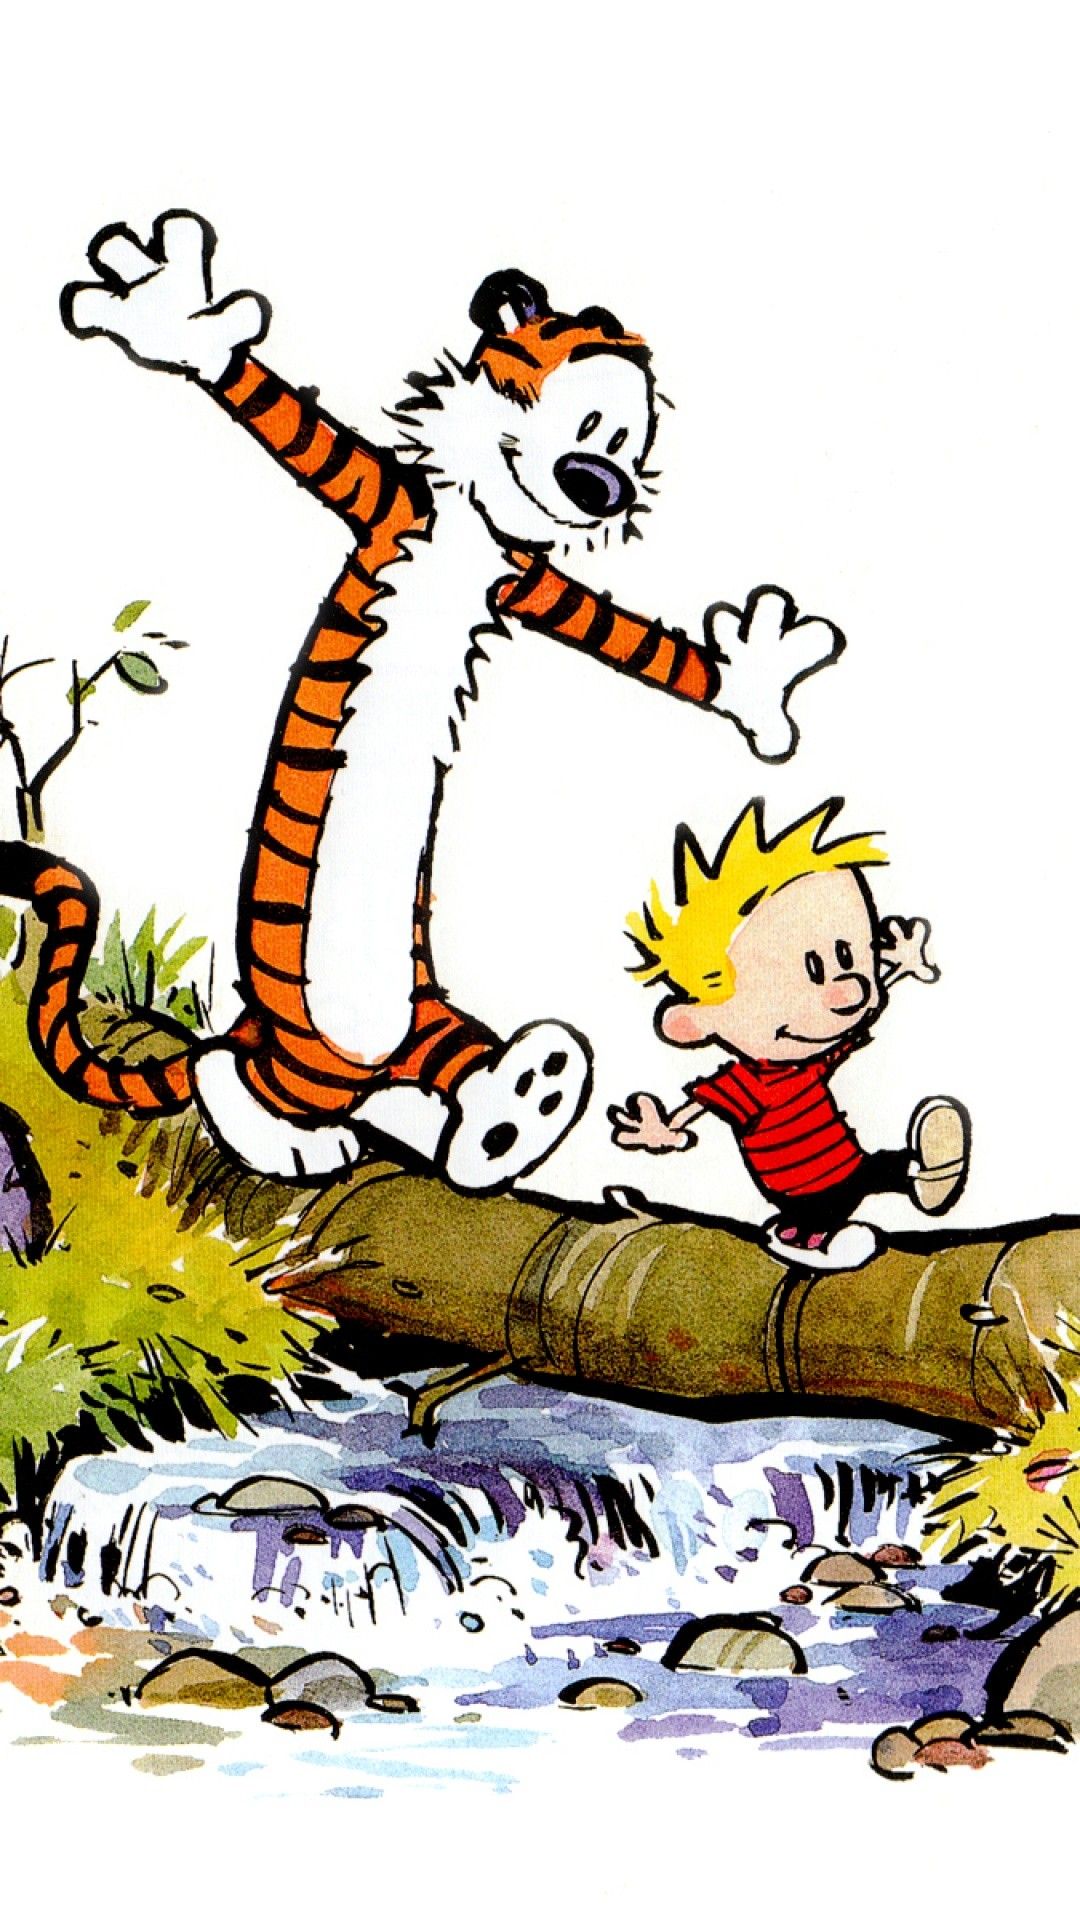 1080x1920 Best 20+ Calvin and hobbes wallpaper ideas on Pinterest | Calvin and hobbes,  Best calvin and hobbes and Calvin and hobbes tattoo